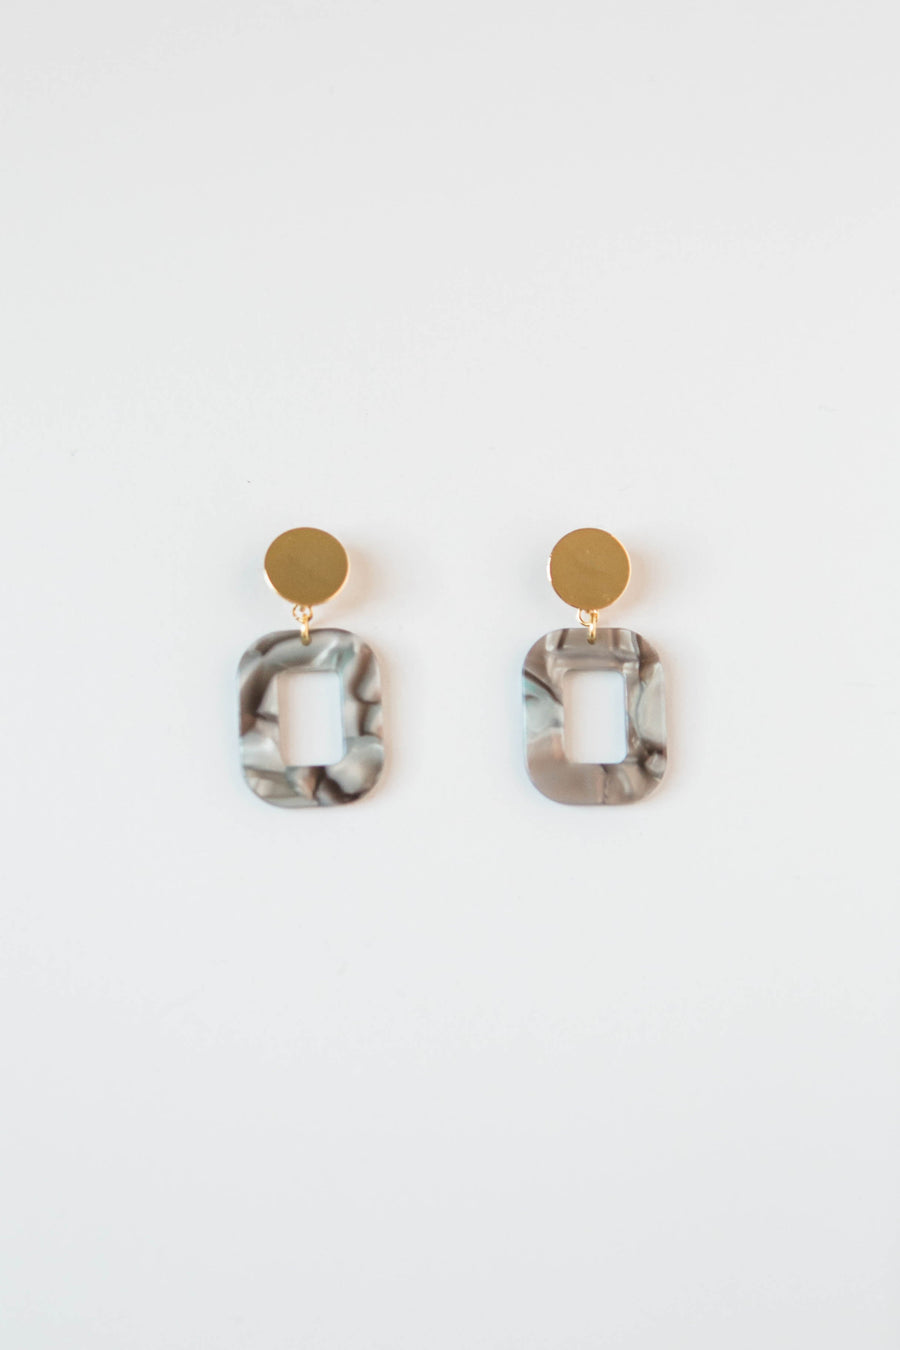 Abalone Shell Acrylic Square Earrings-M Street Studios-MONIKER GENERAL